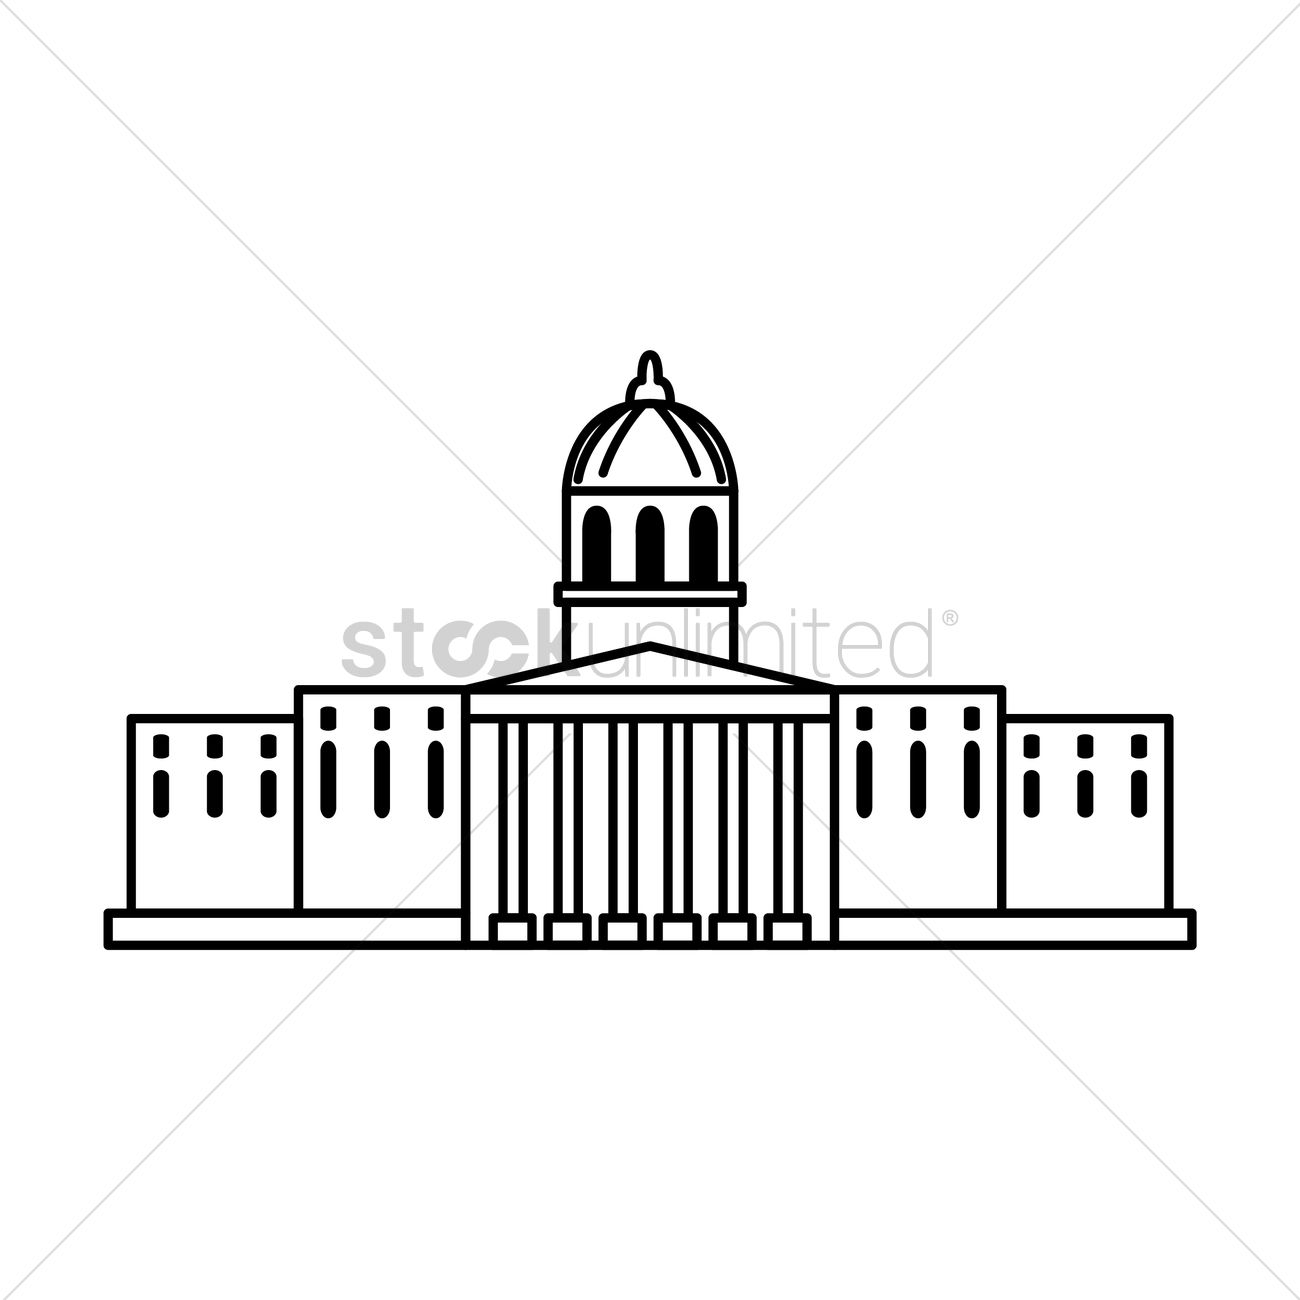 Imperial war museum Vector Image.